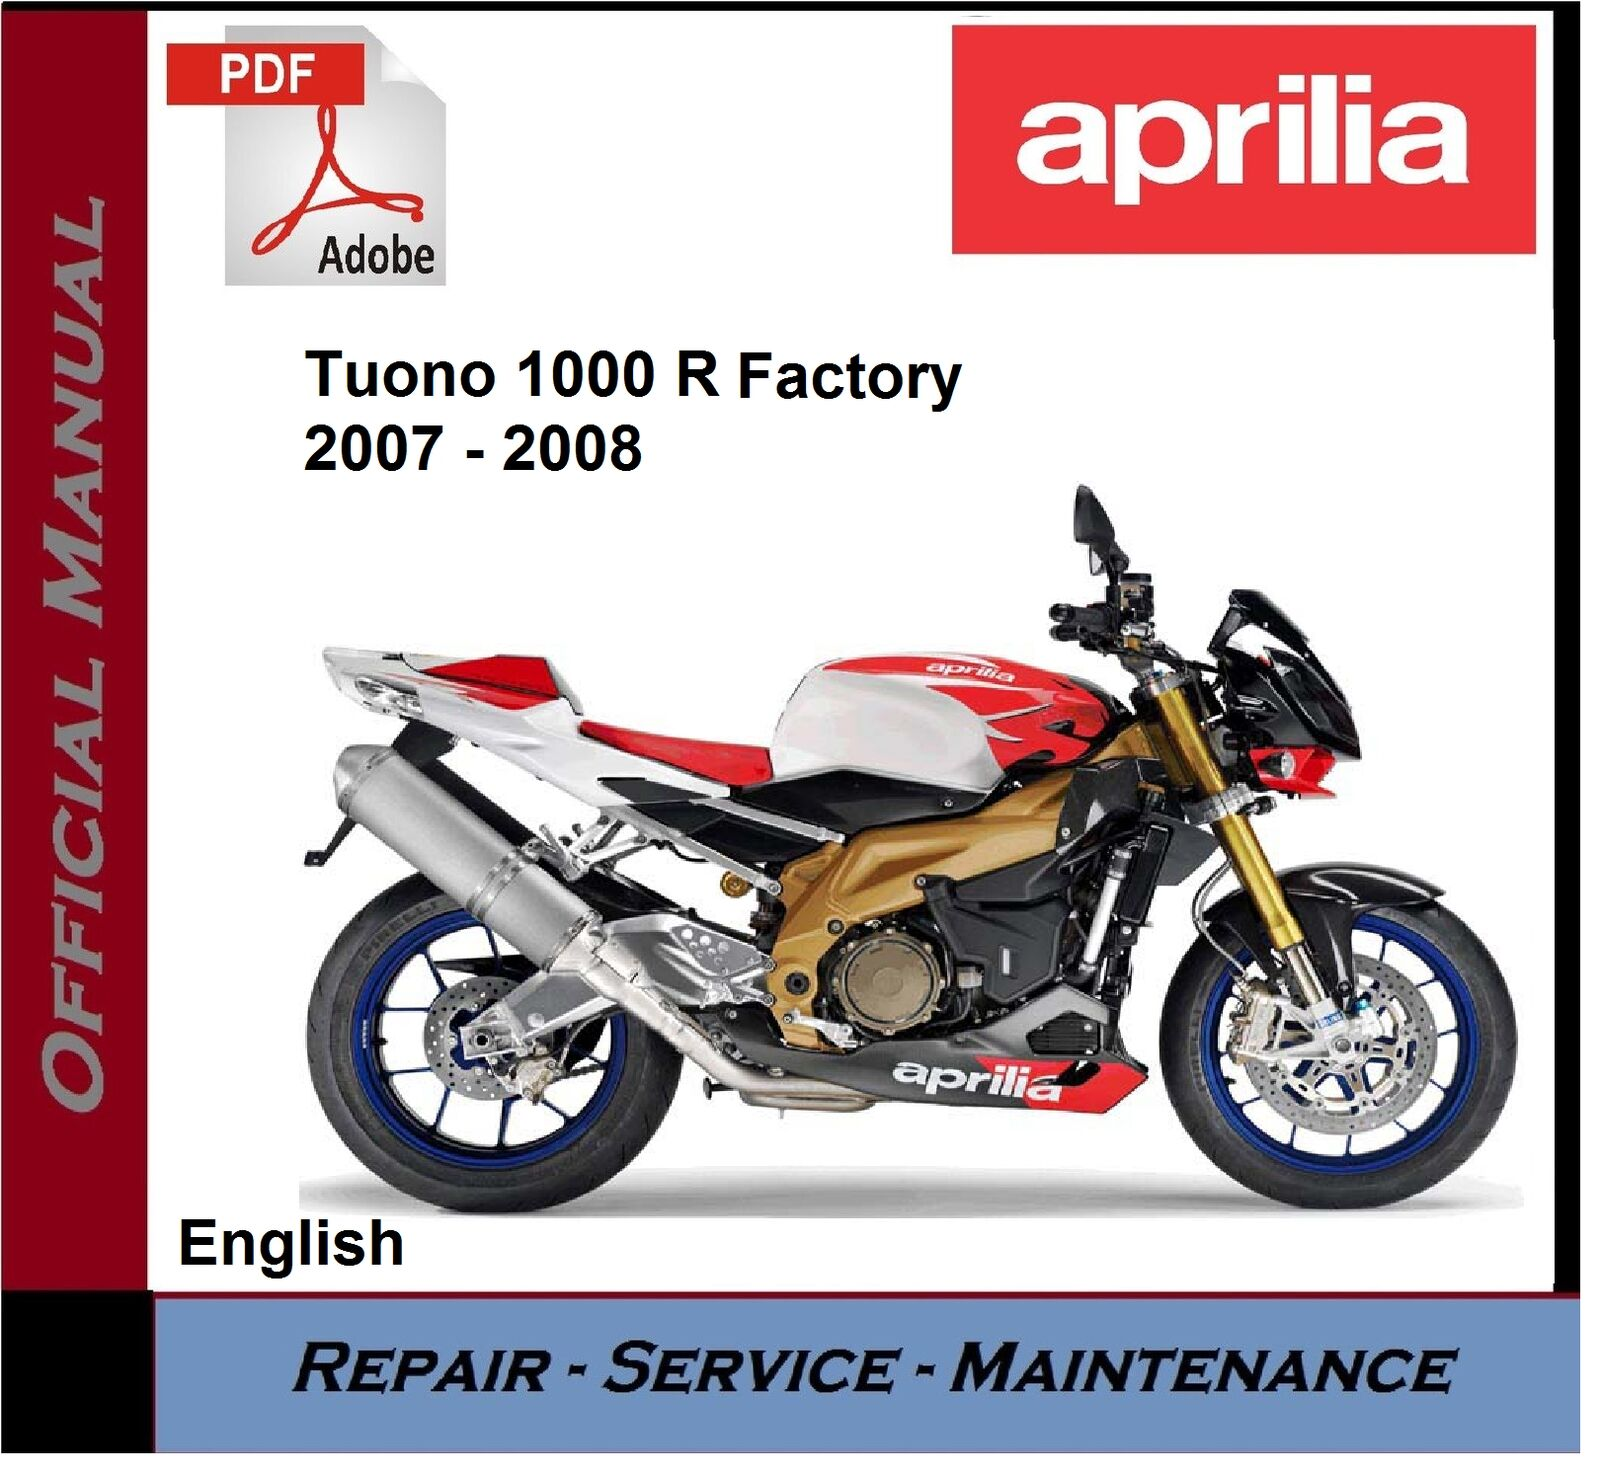 Aprilia motorcycle manuals literature ebay aprilia tuono 1000 r factory 2007 2008 workshop service repair manual fandeluxe Choice Image